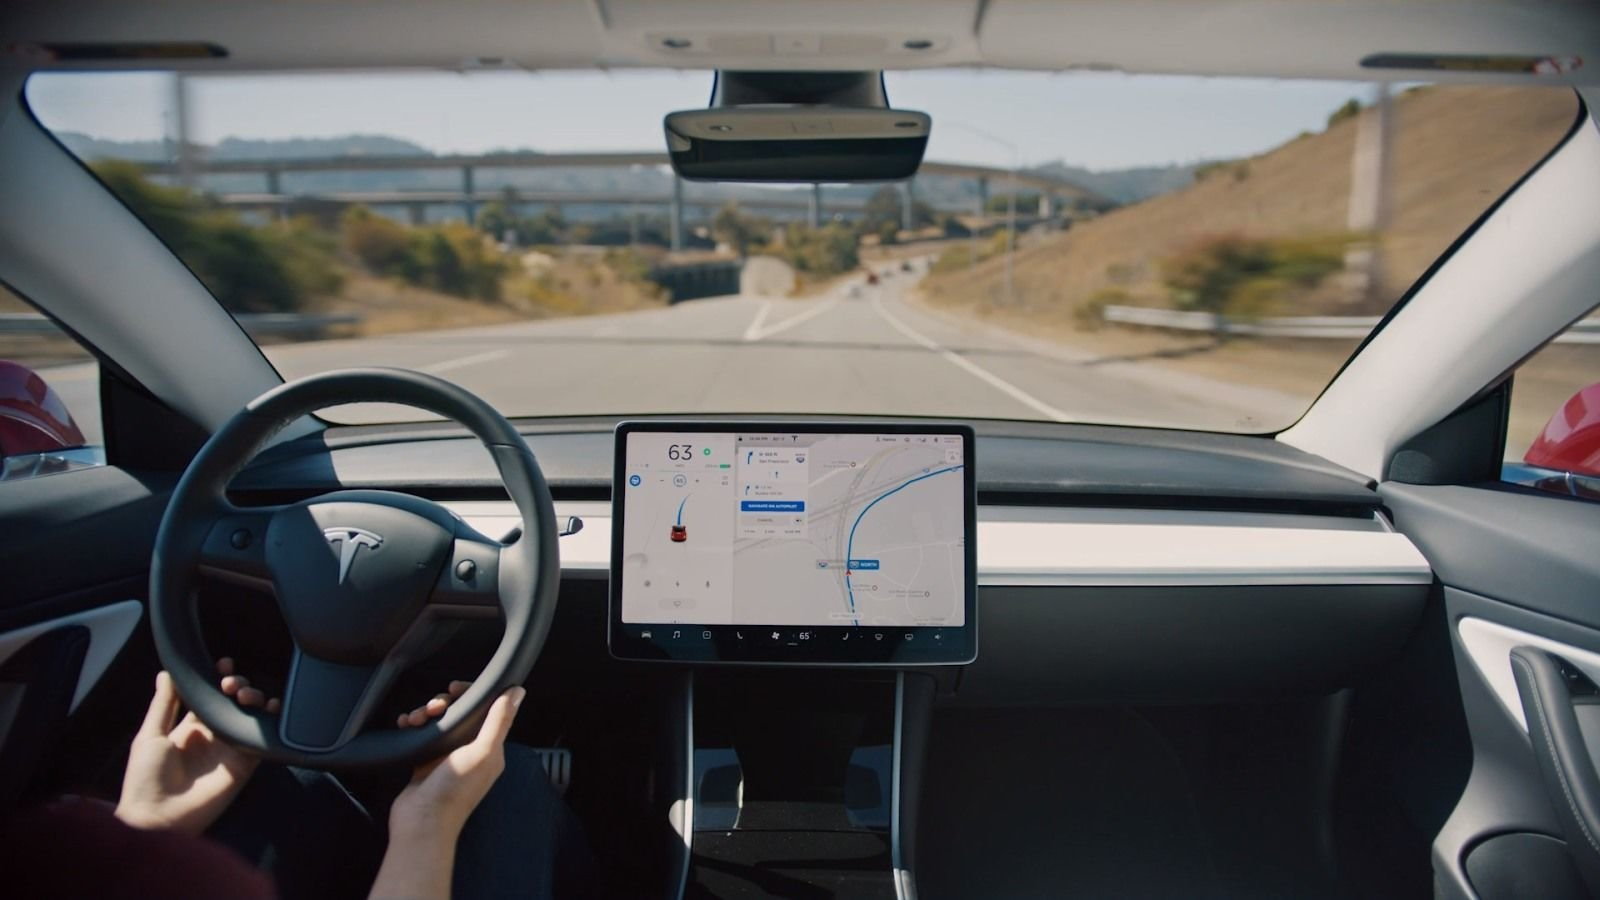 Tesla Autopilot has Flaws and is Not Ready